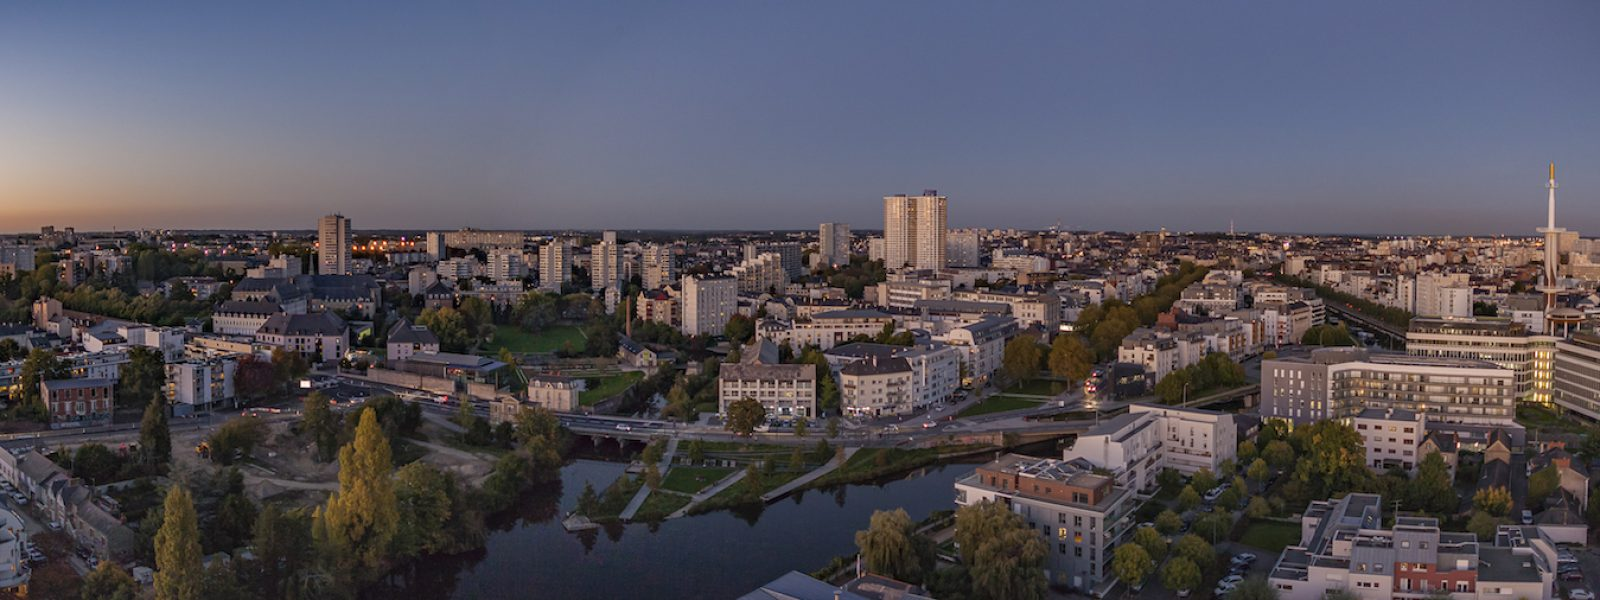 Aerial view of Rennes